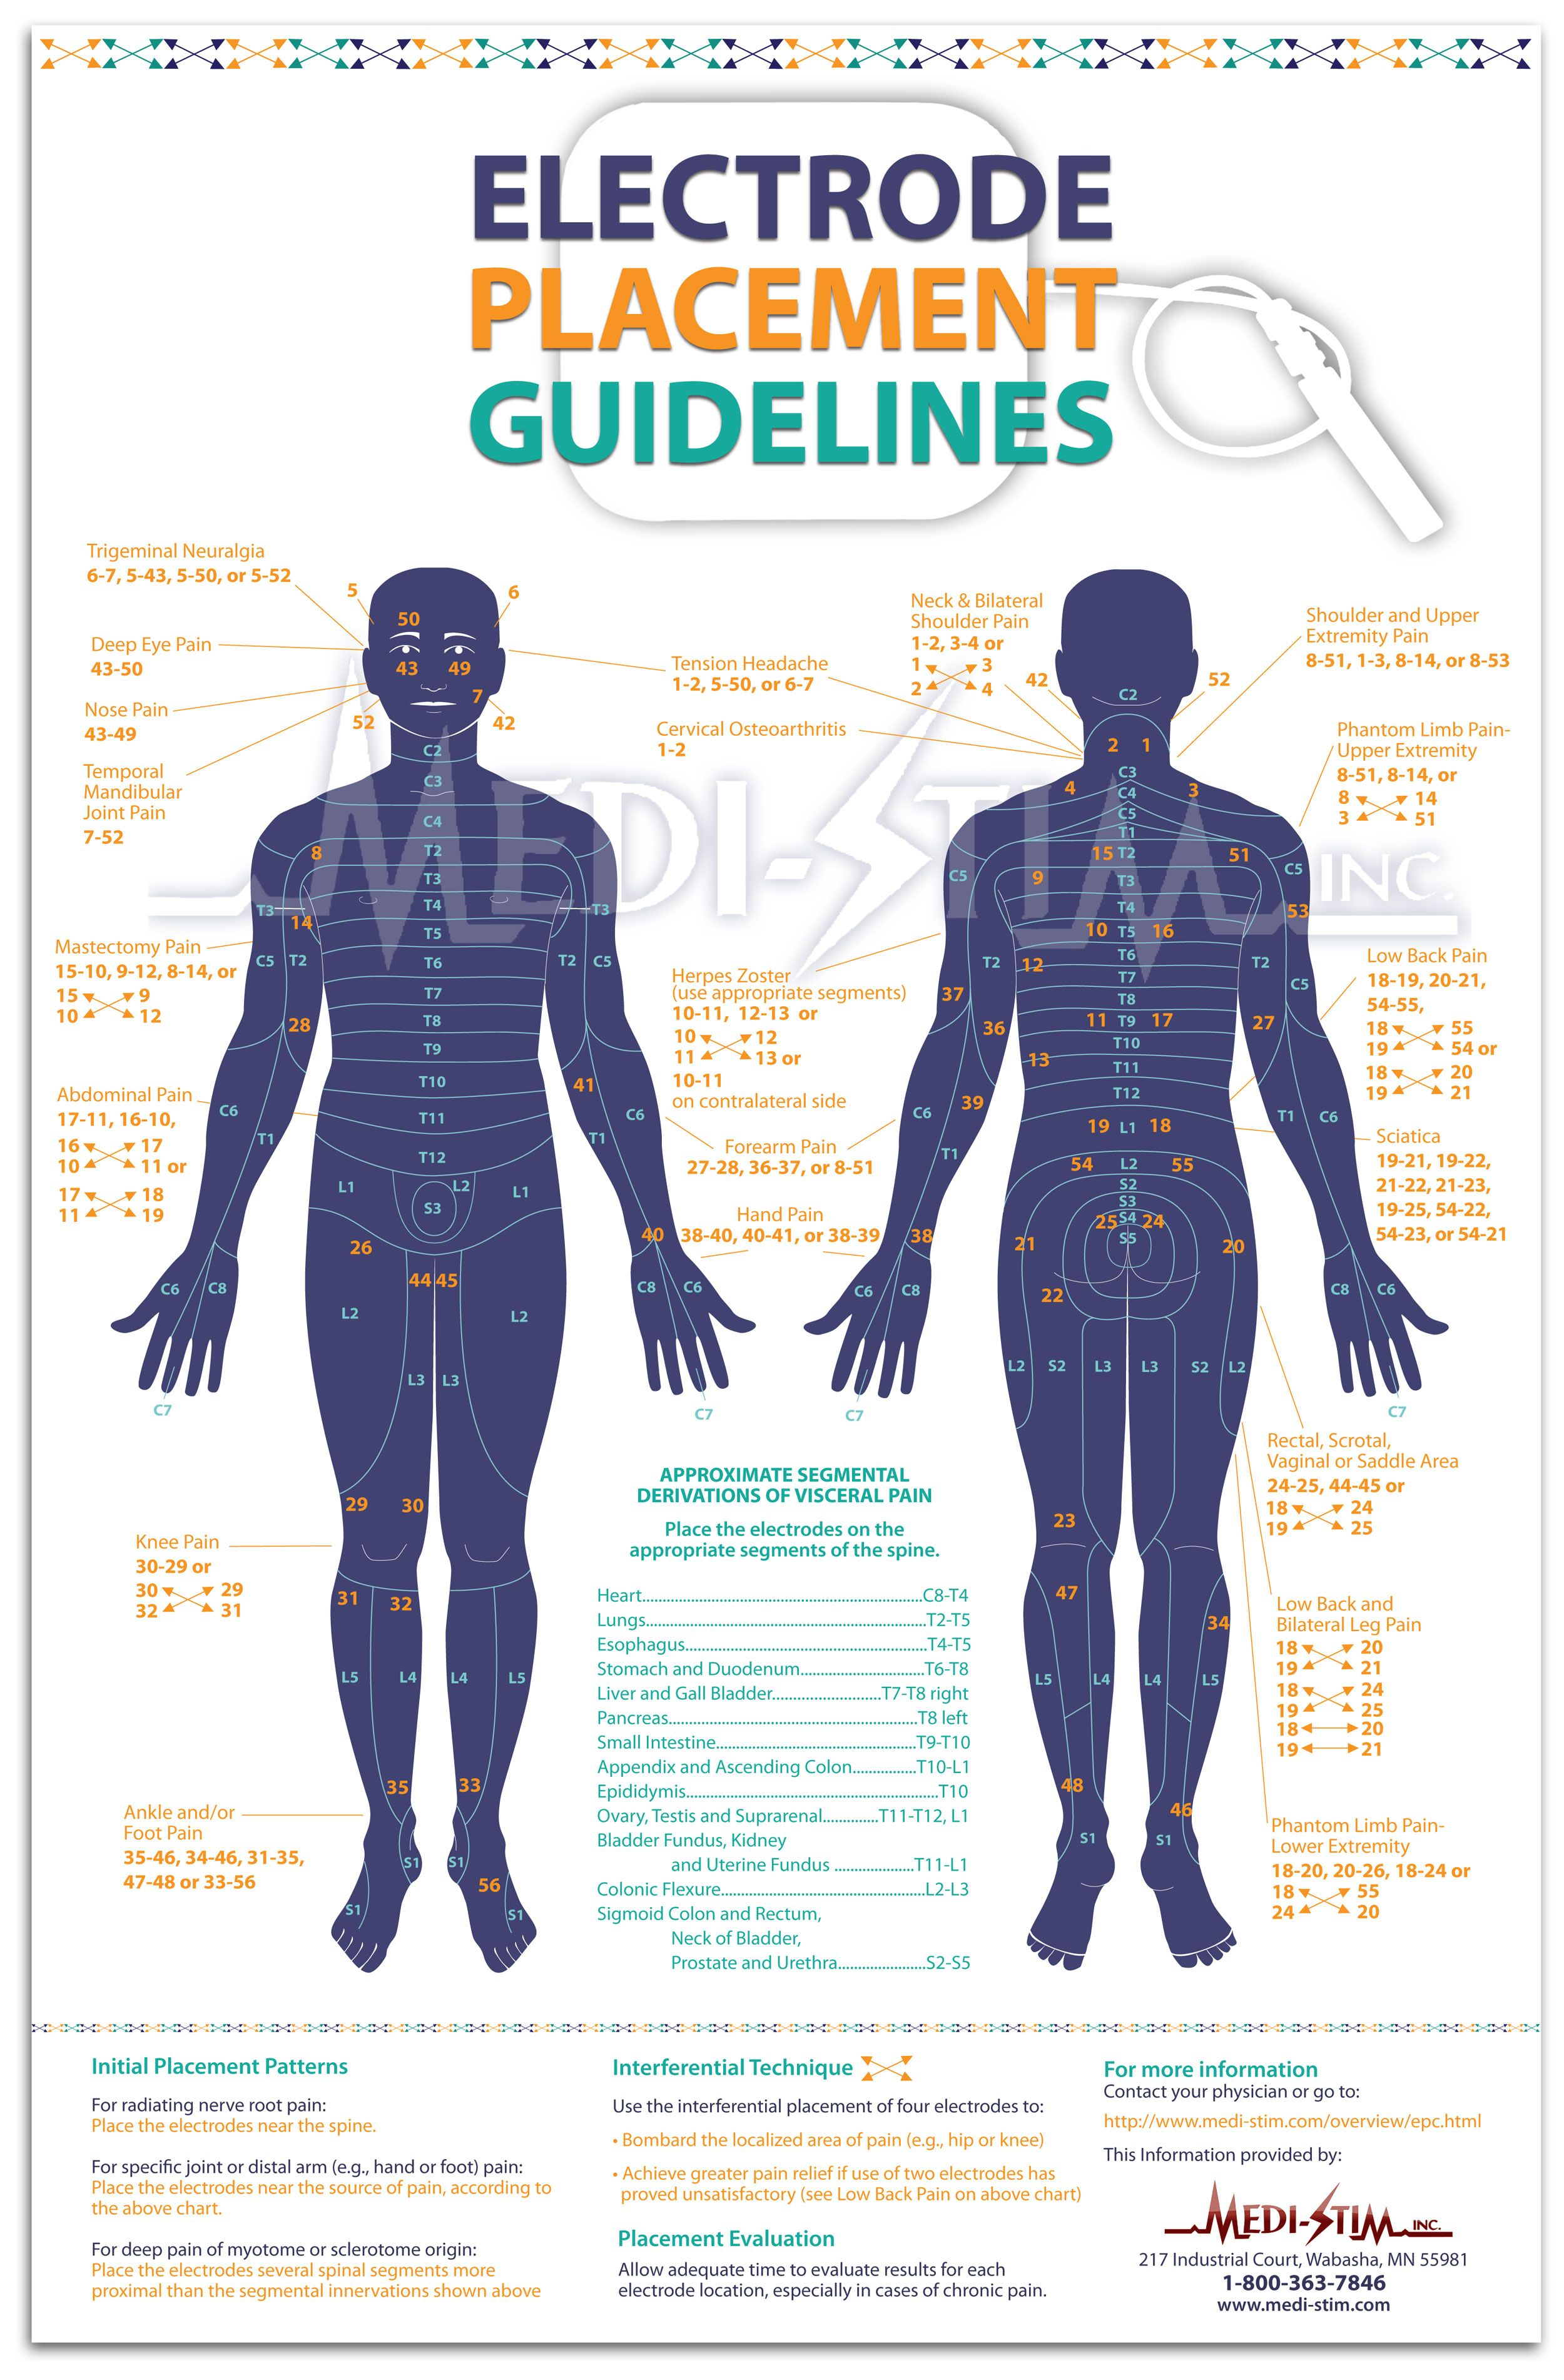 Tens Placement Guide With Images Tens Electrodes Tens Electrode Placement Tens Unit Placement